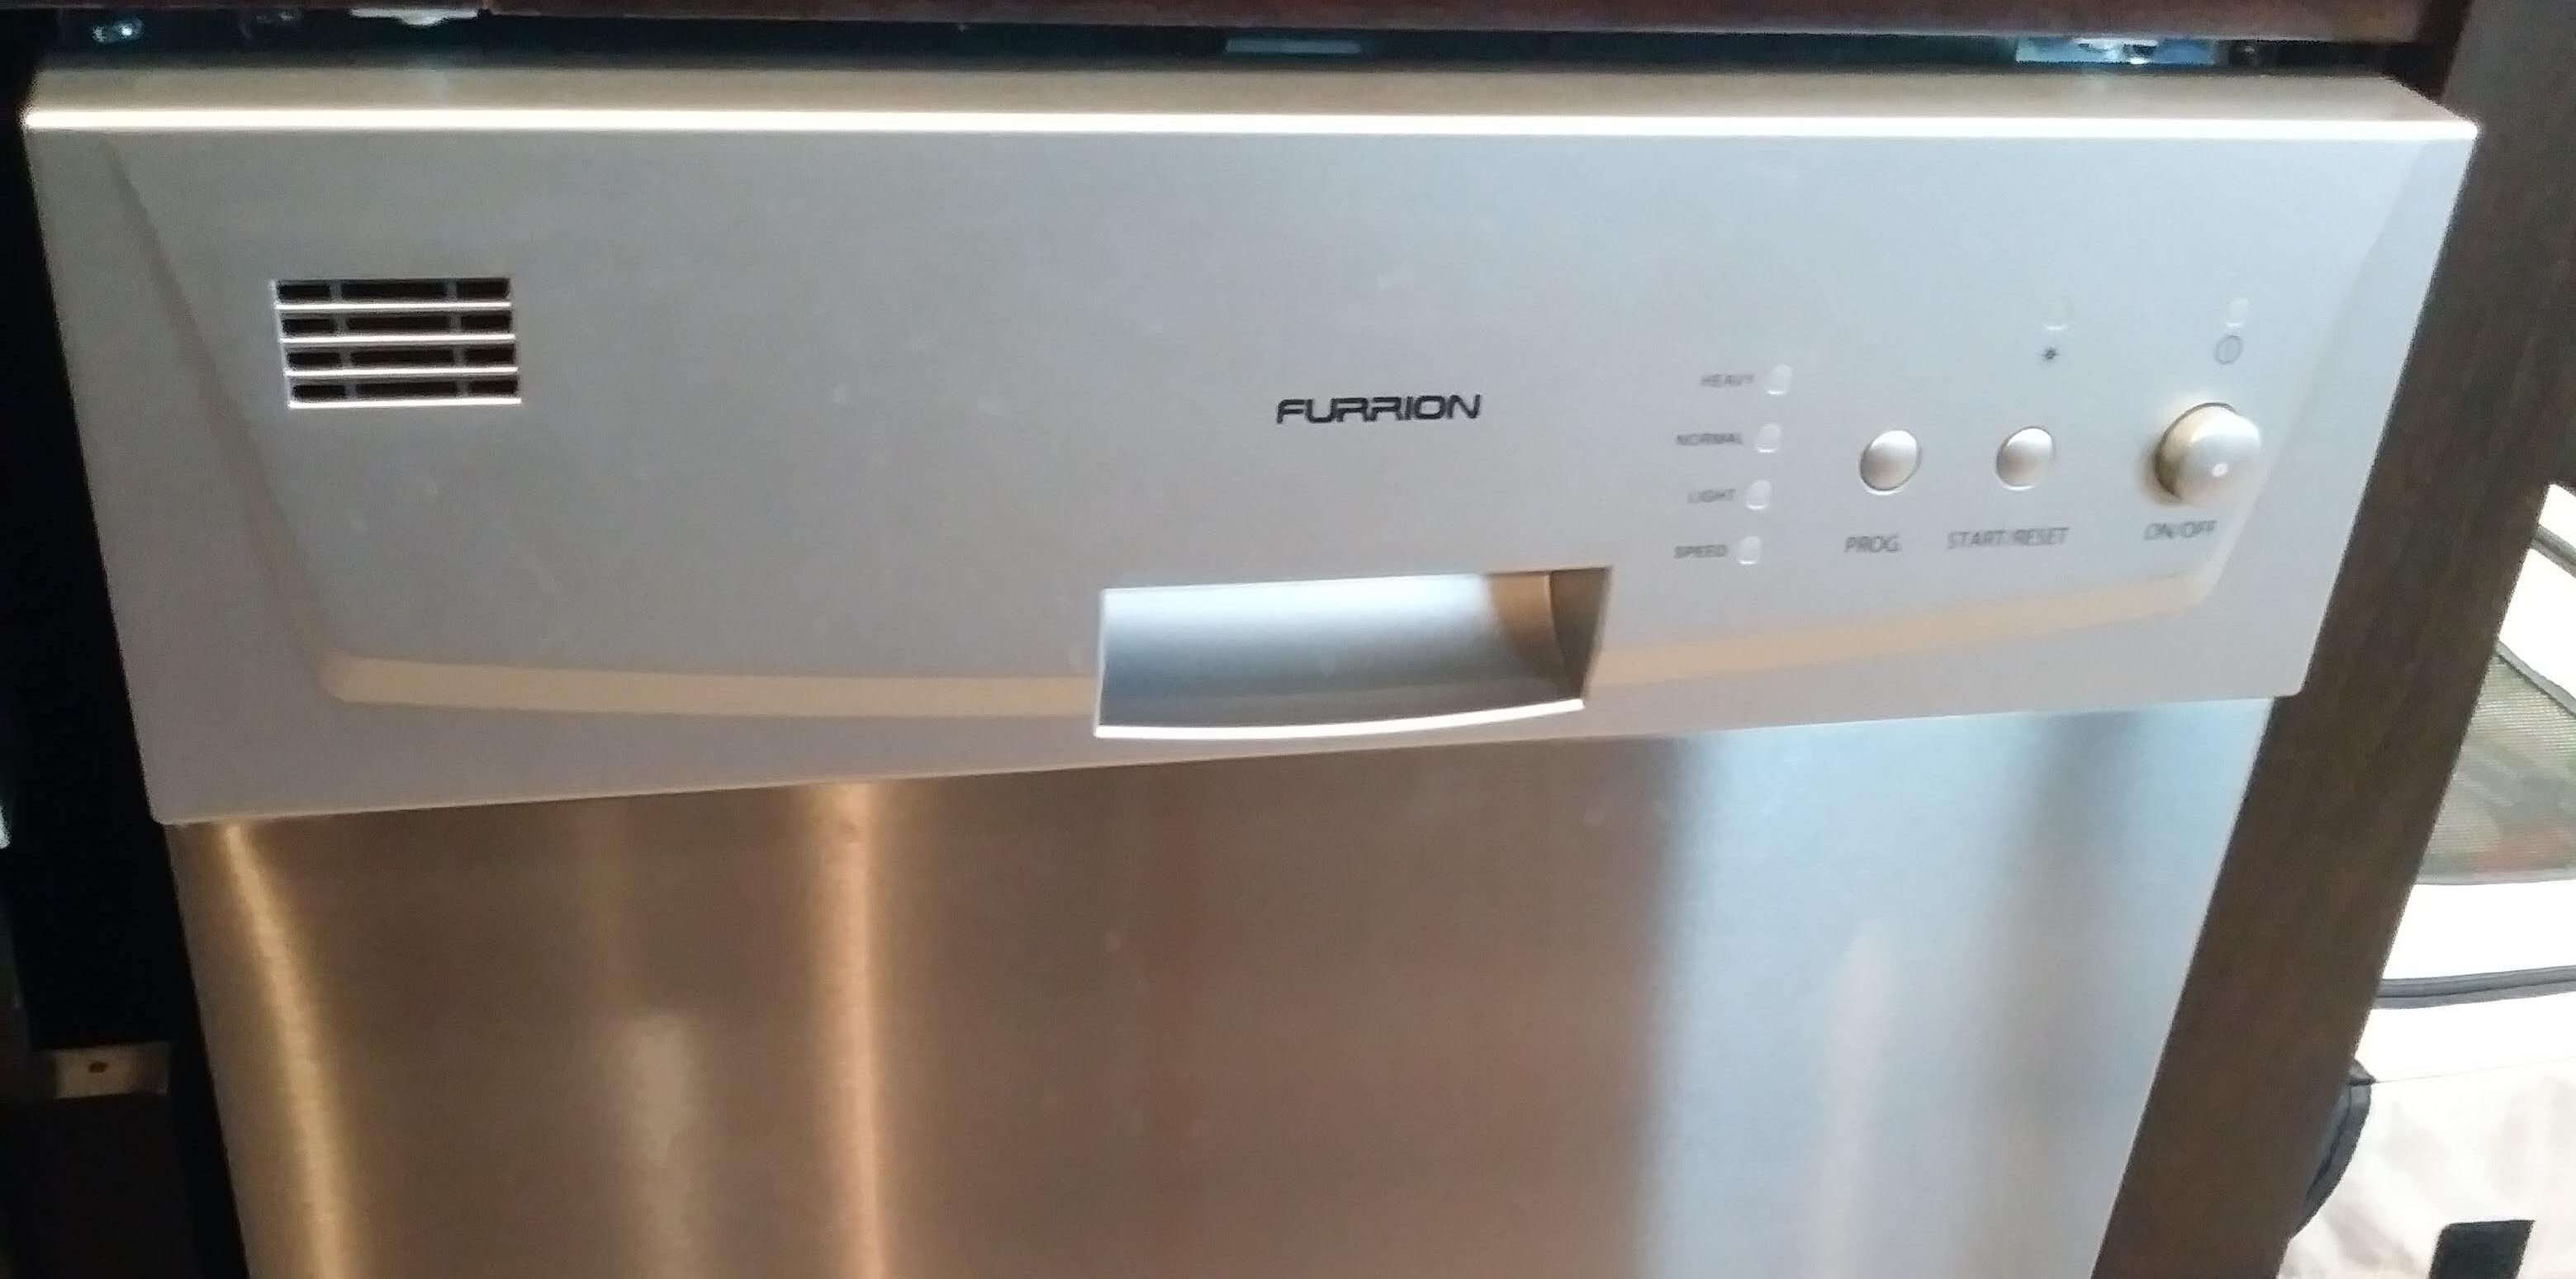 The front panel of an RV dishwasher